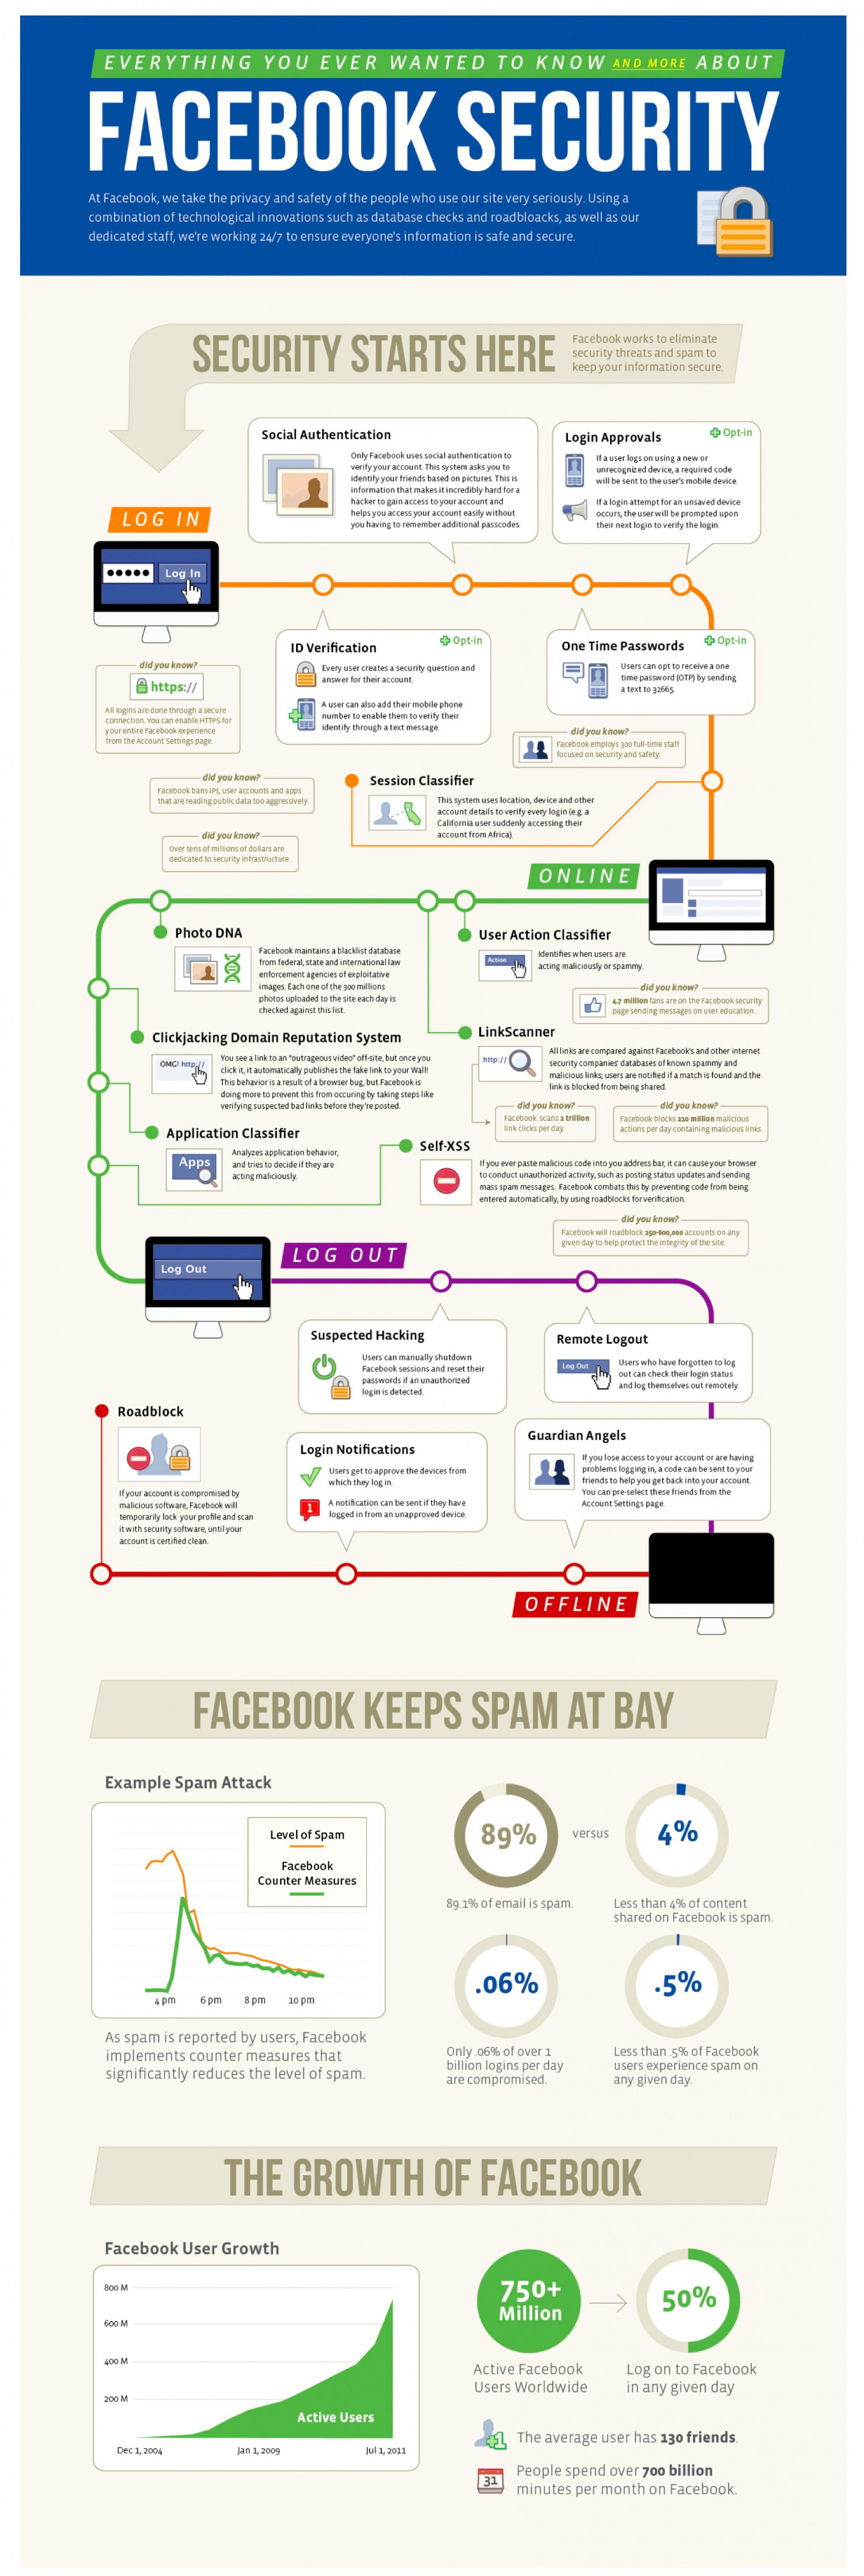 Facebook Security Infographic